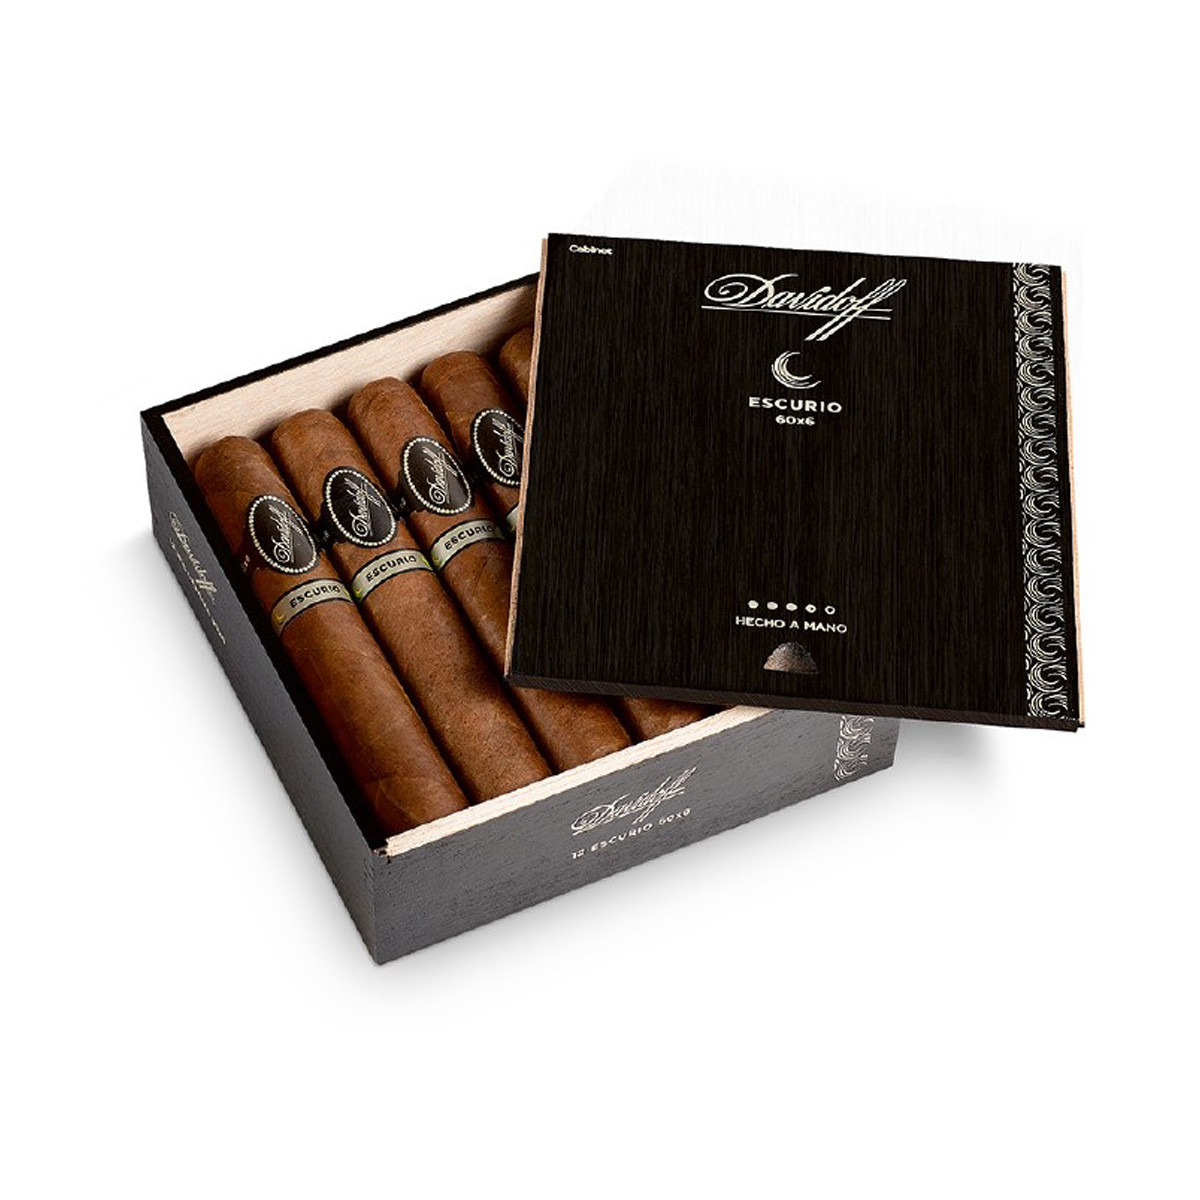 Davidoff Escurio 660 (6x60 / Box 12)